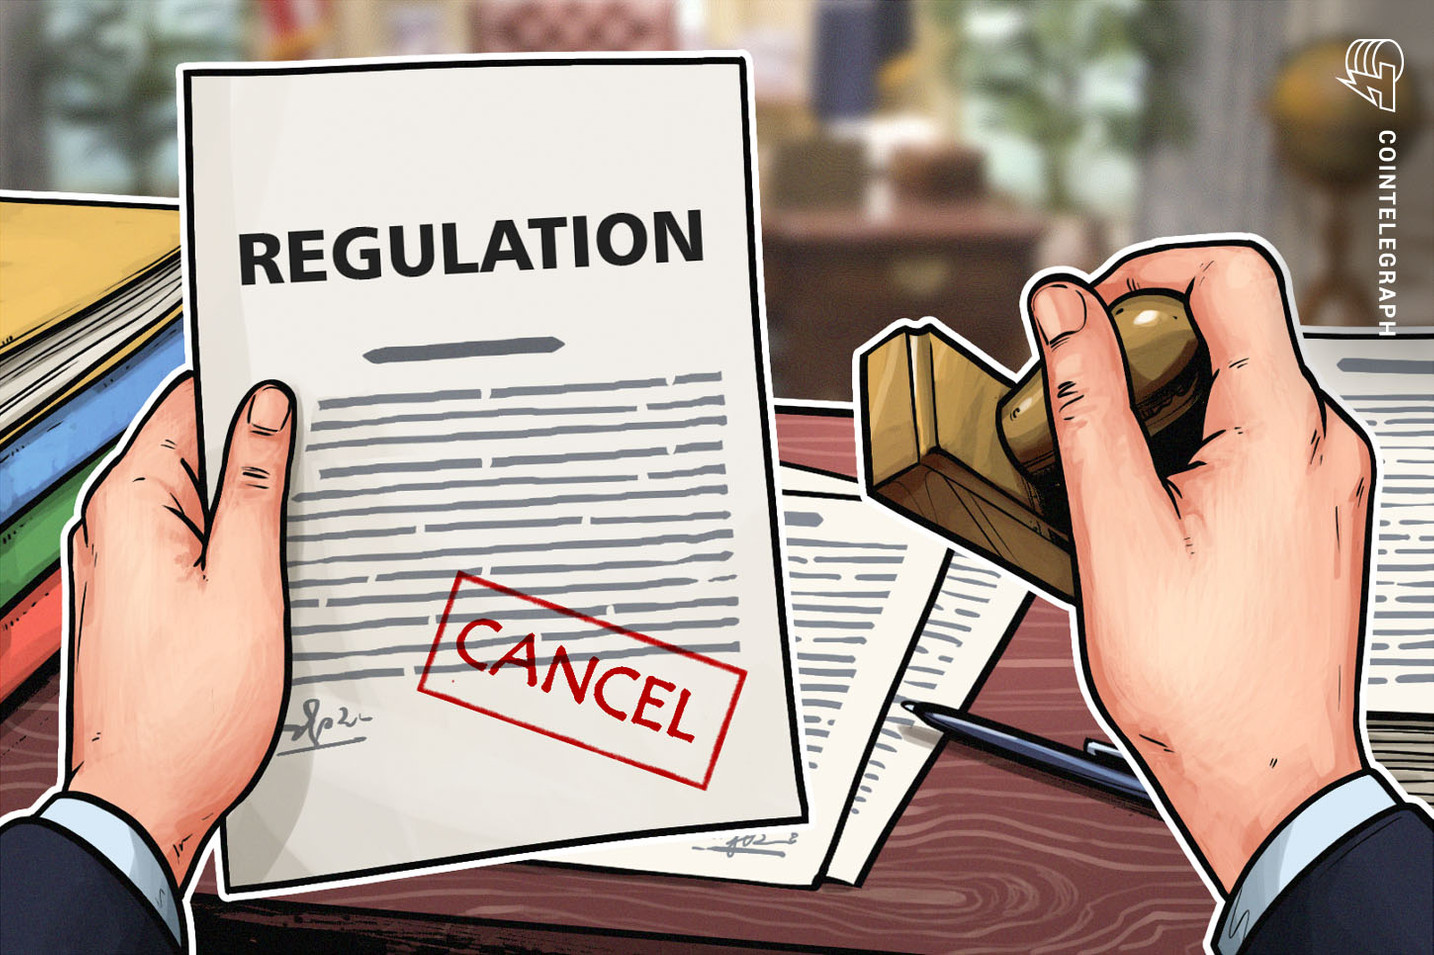 South Carolina State Regulators Withdraw Enforcement Actions on Two Blockchain Startups